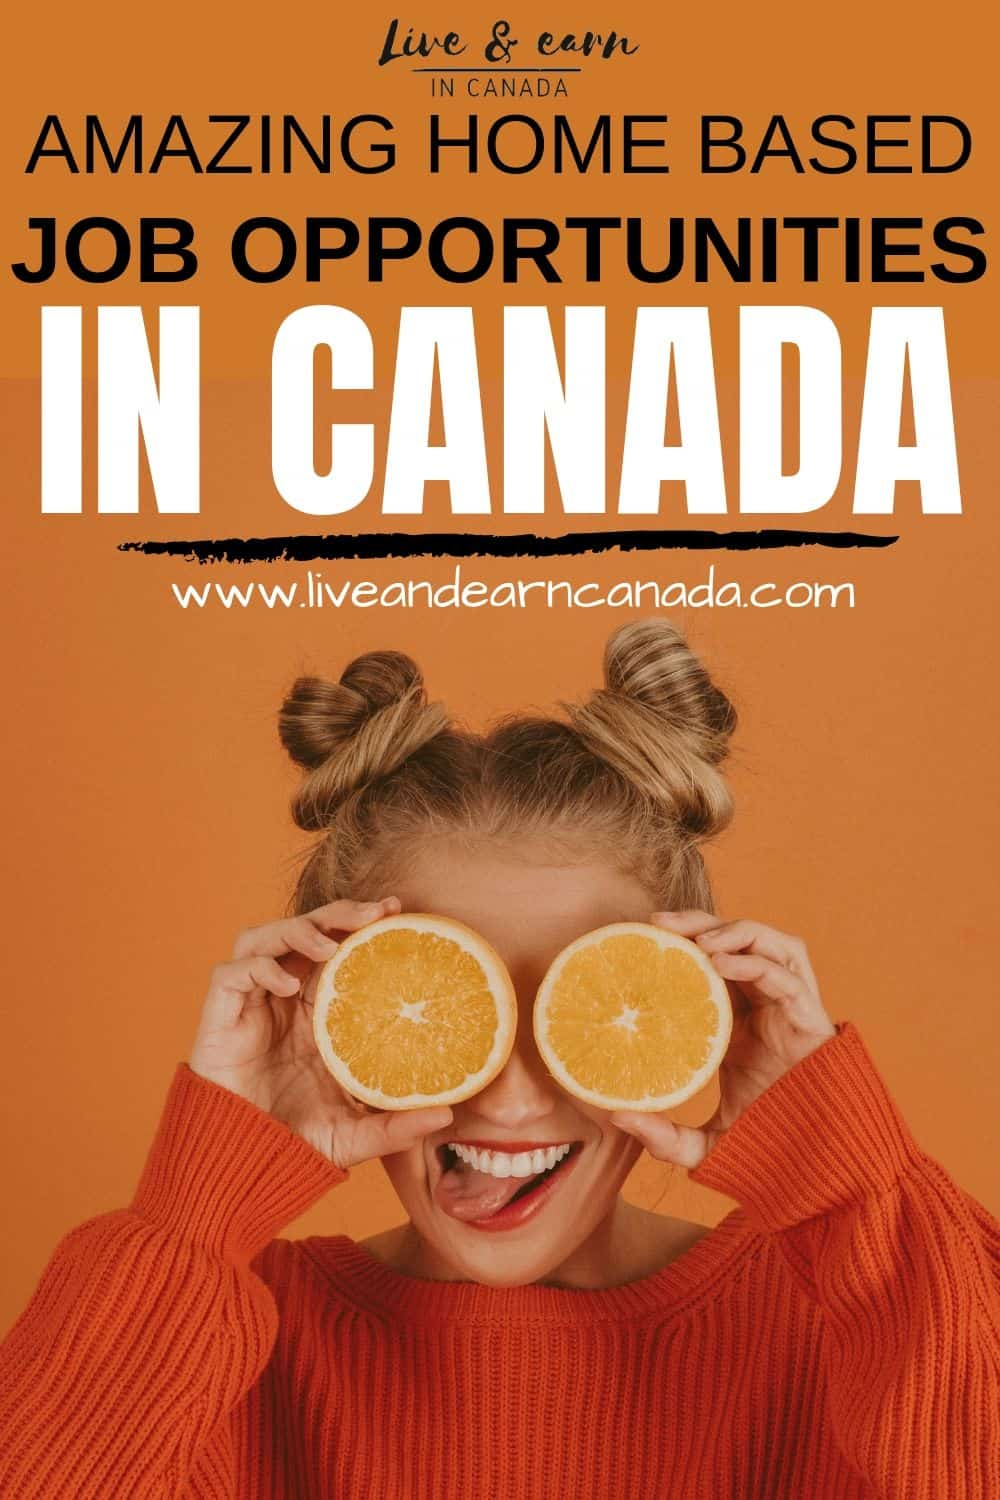 Here are a few job opportunities in Canada that you can do if you are looking to work from home. These are legitimate work from home opportunities that can start right now to make extra cash from home #canadianjobs #jobopportunities